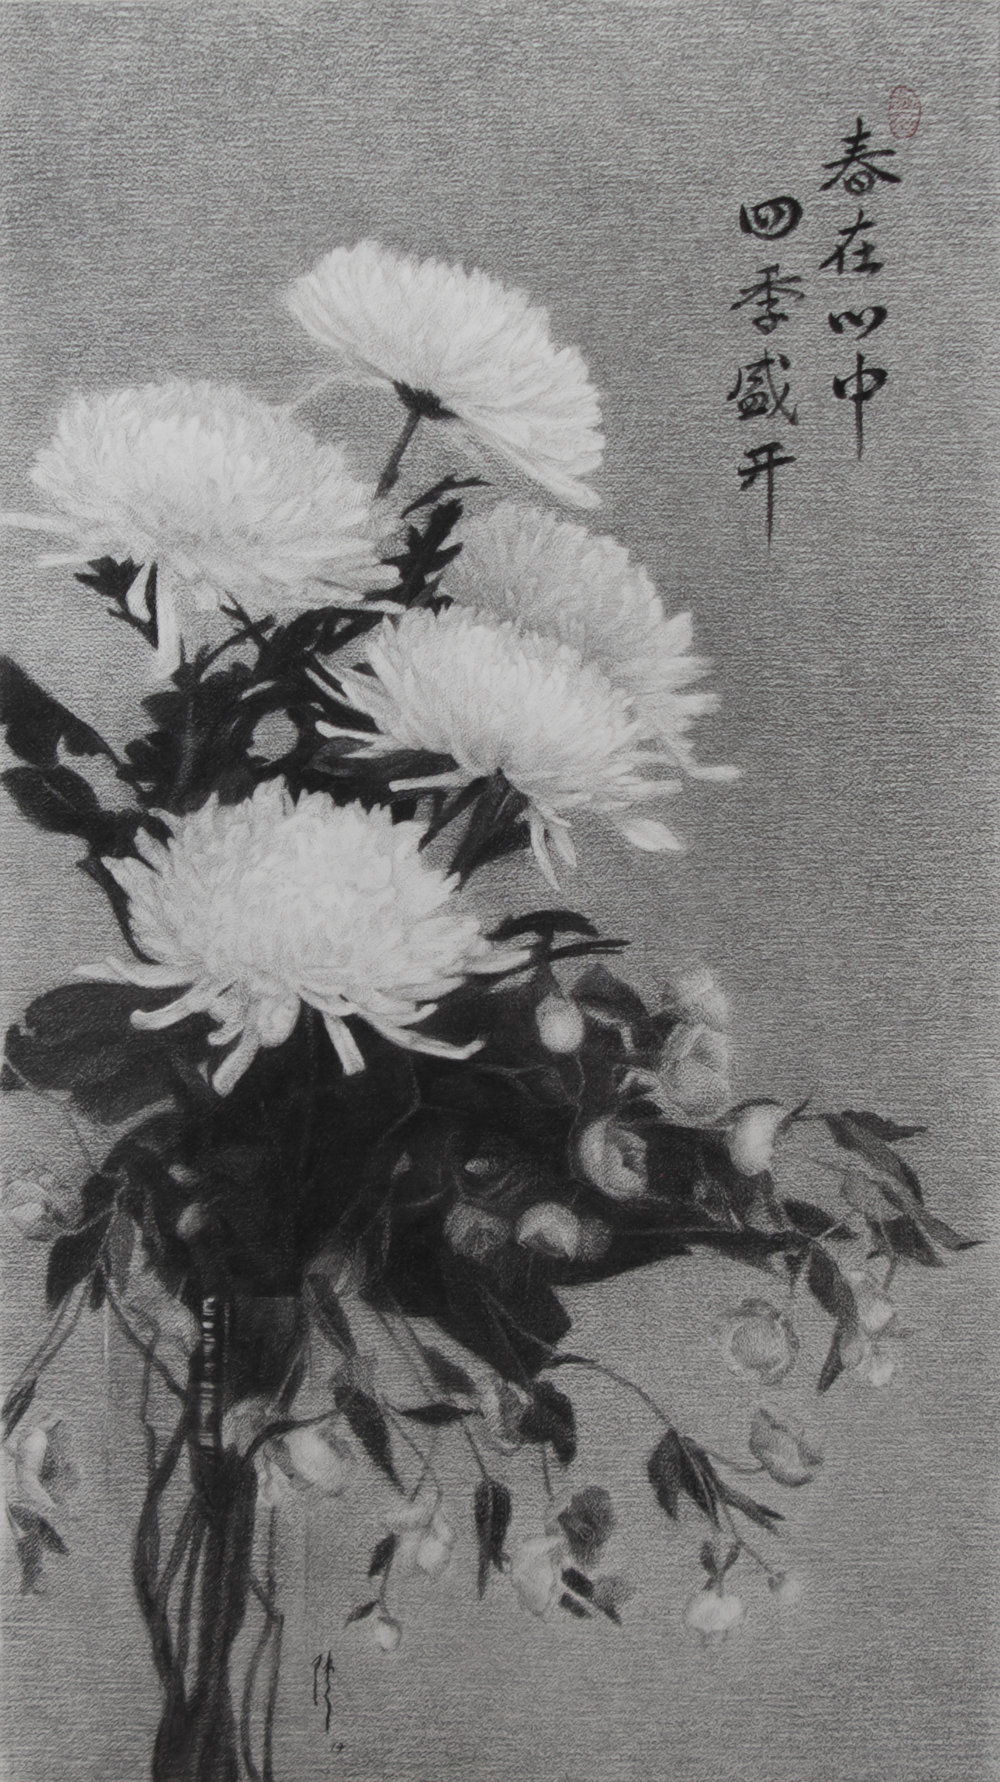 春在心中 四季盛开   charcoal on paper 2018  commissioned. Words by Liang Wern Fook; 字 梁文福 Calligraphy by Yong Gee Lin; 写 杨如莲